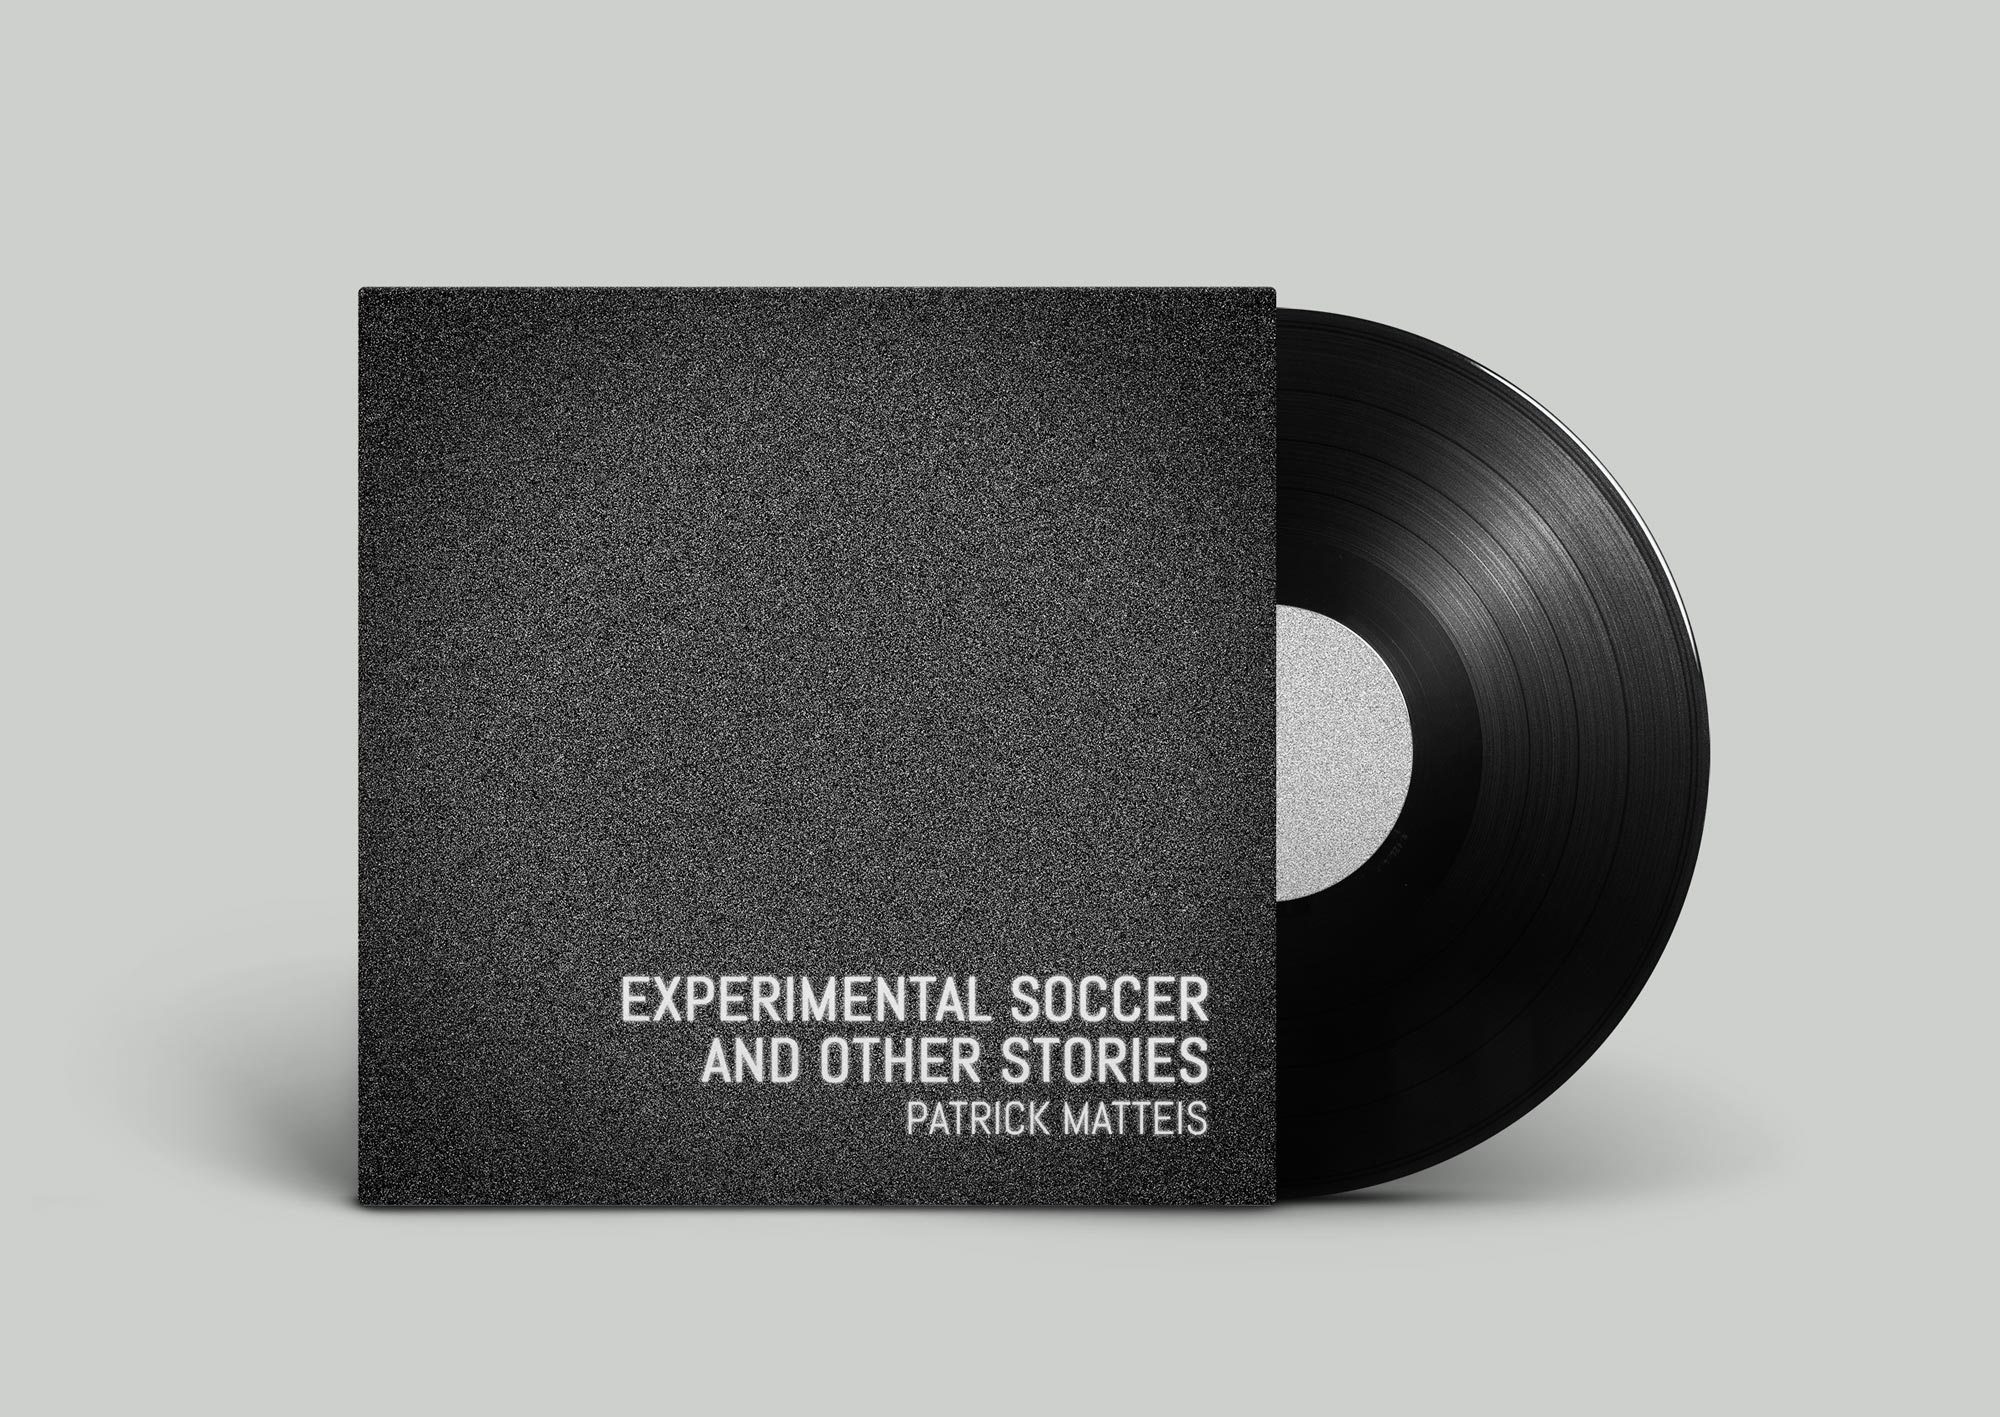 Patrick Matteis - Experimental Soccer And Other Stories